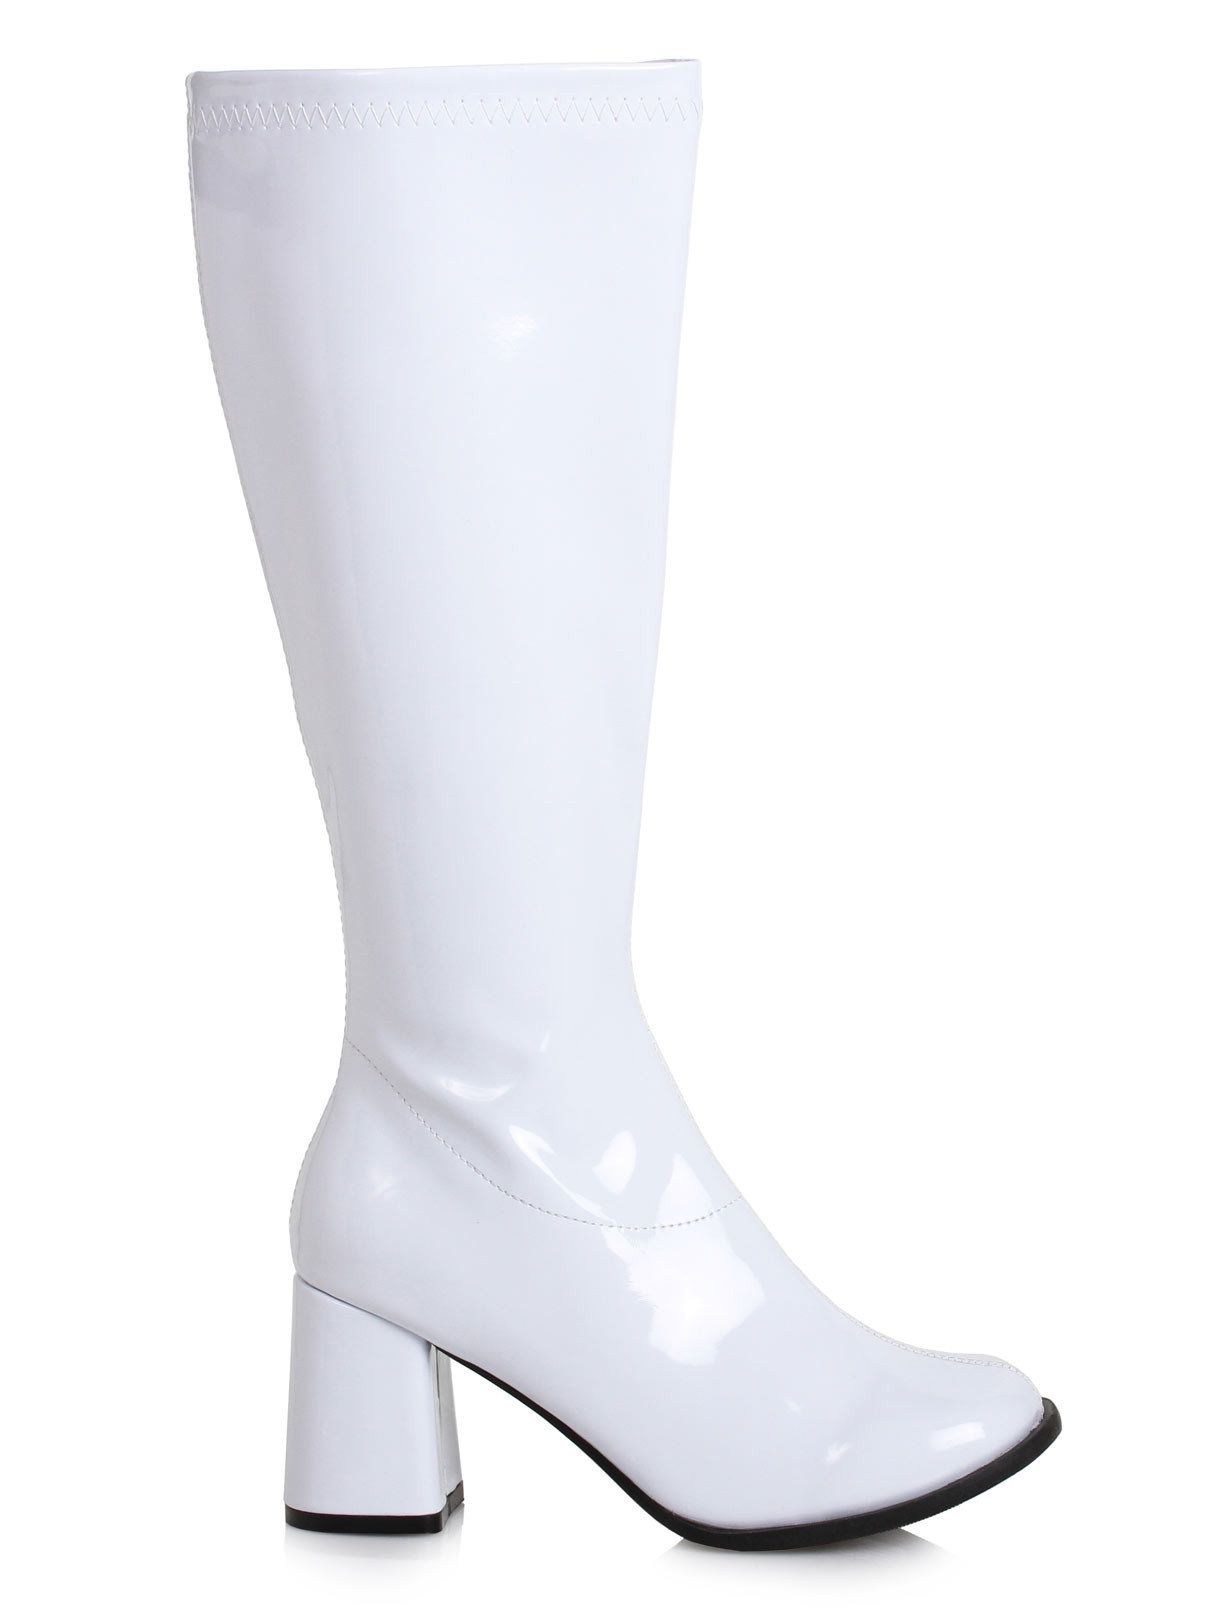 60331769981 Womens White Platform GoGo Boots - Costume Accessories for 2018 ...